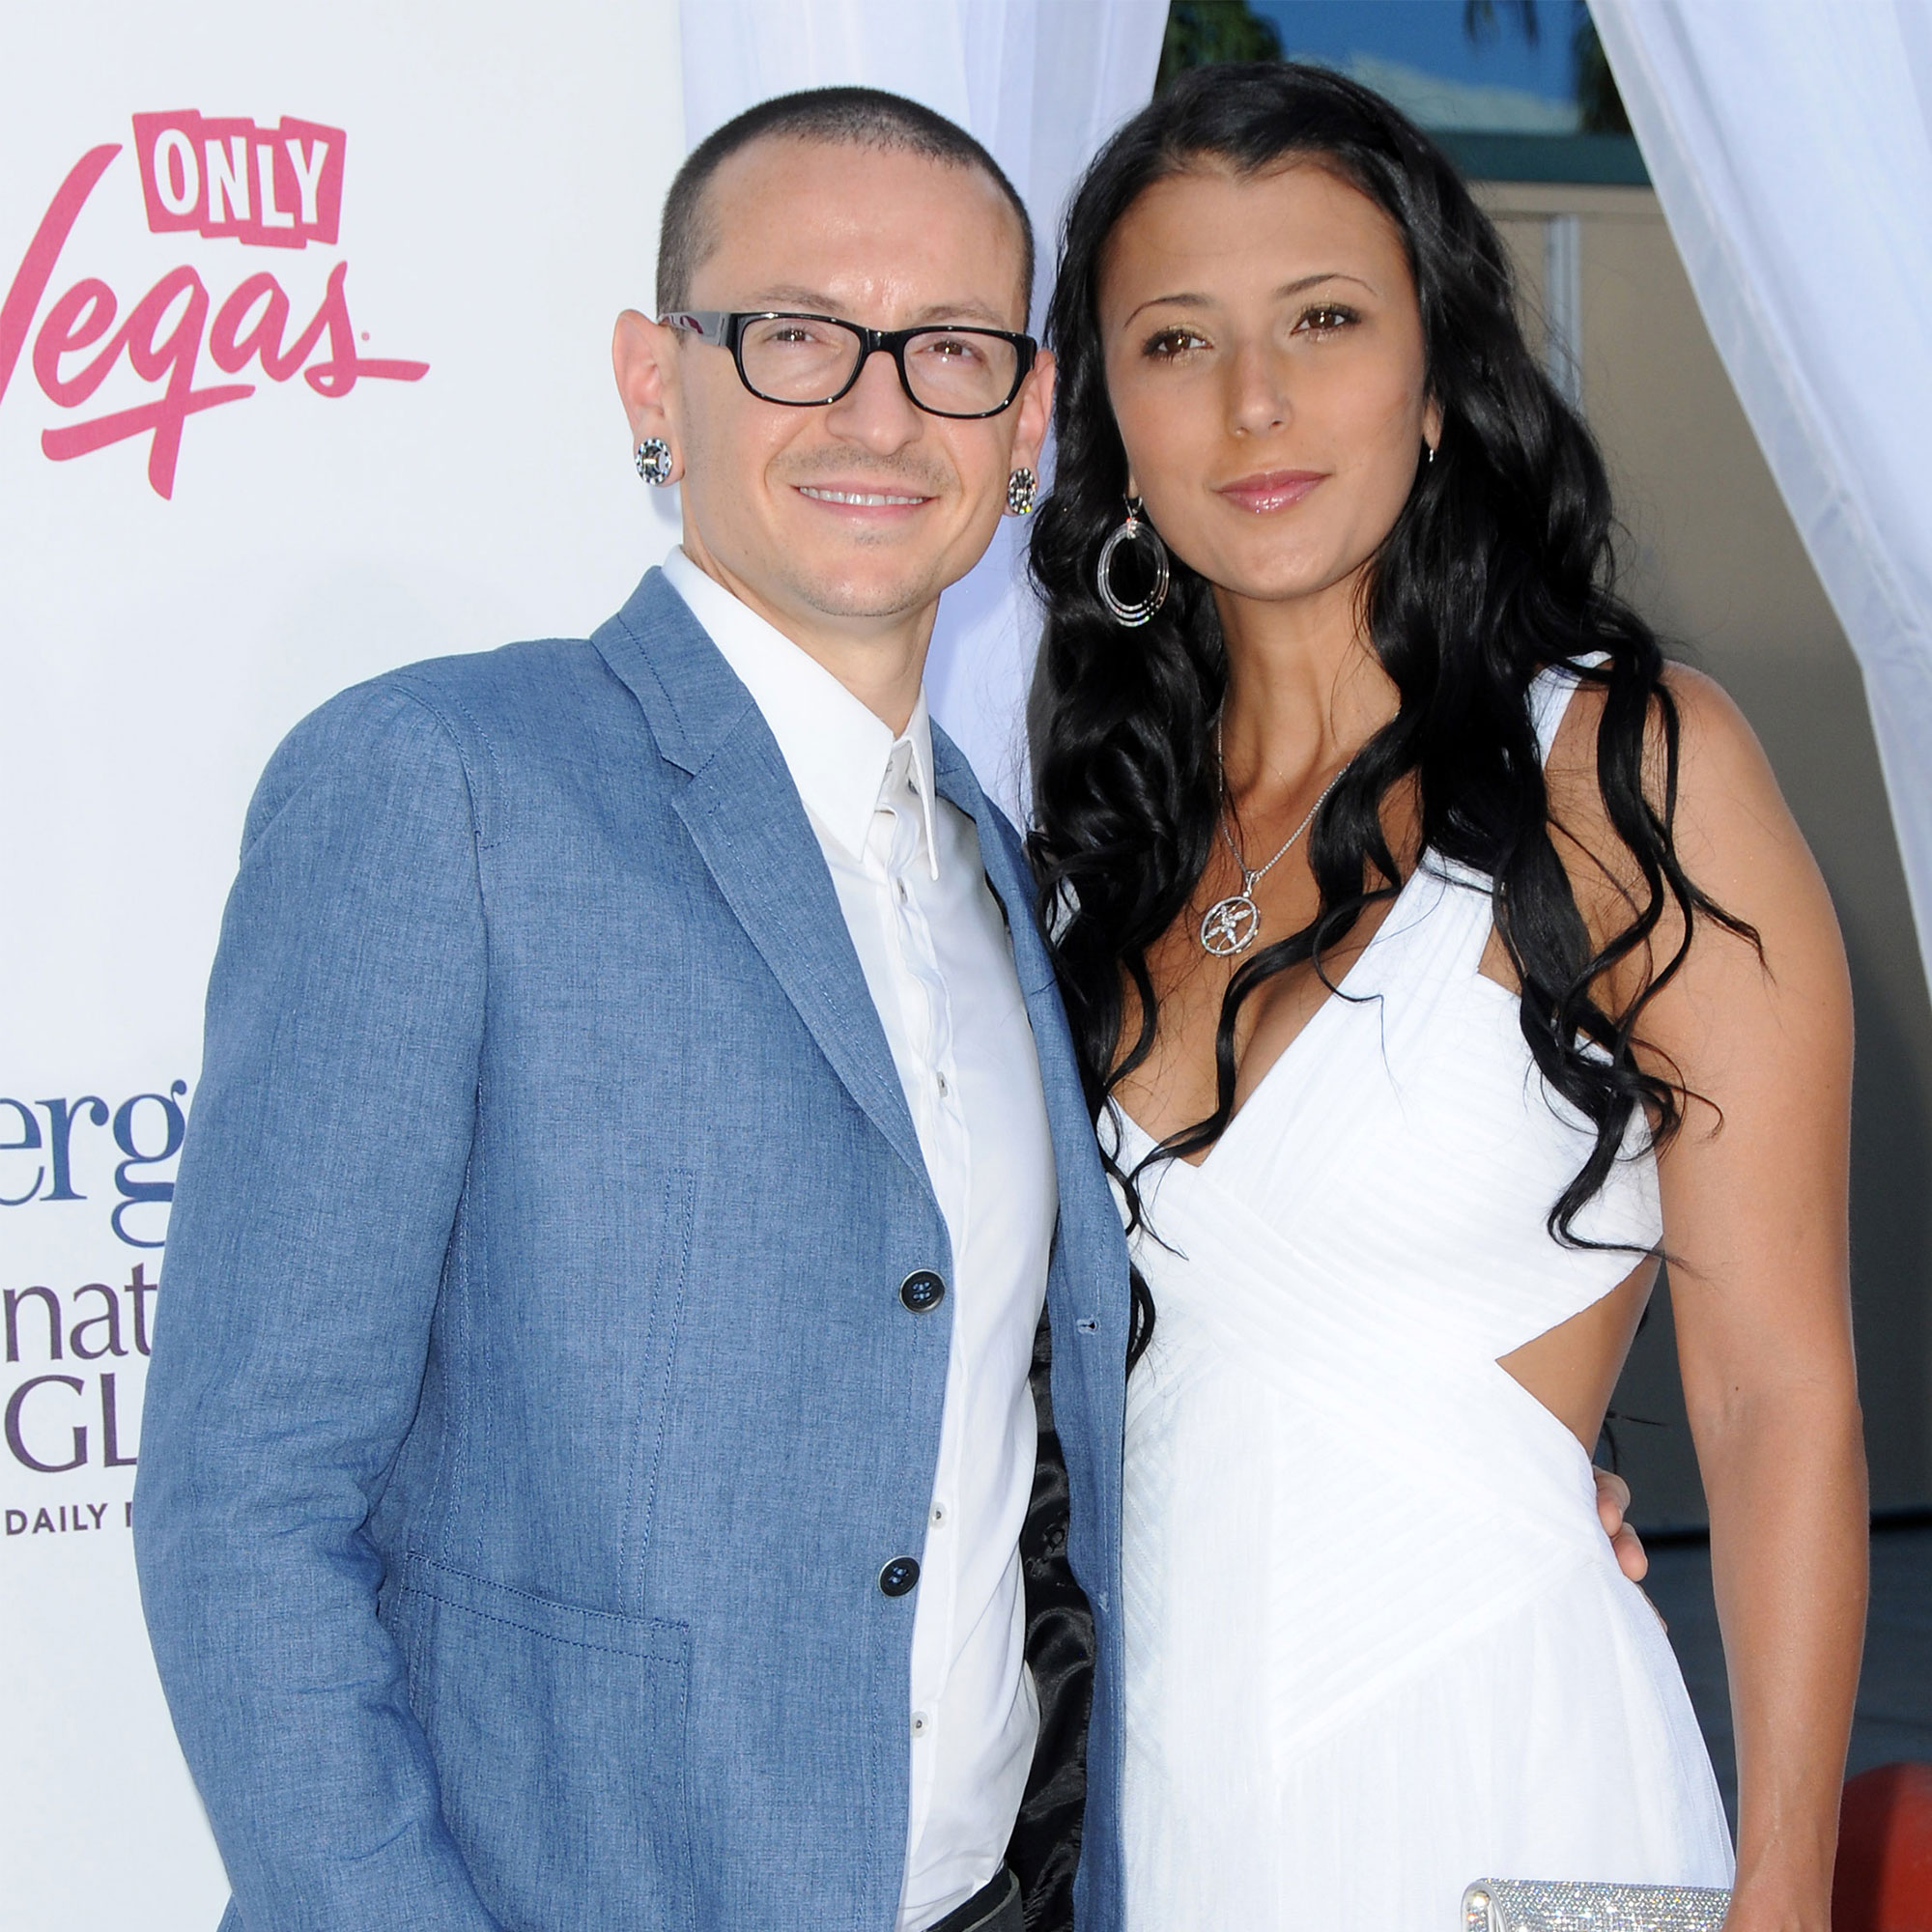 Chester Bennington's Widow Talinda Is Engaged 2 Years After